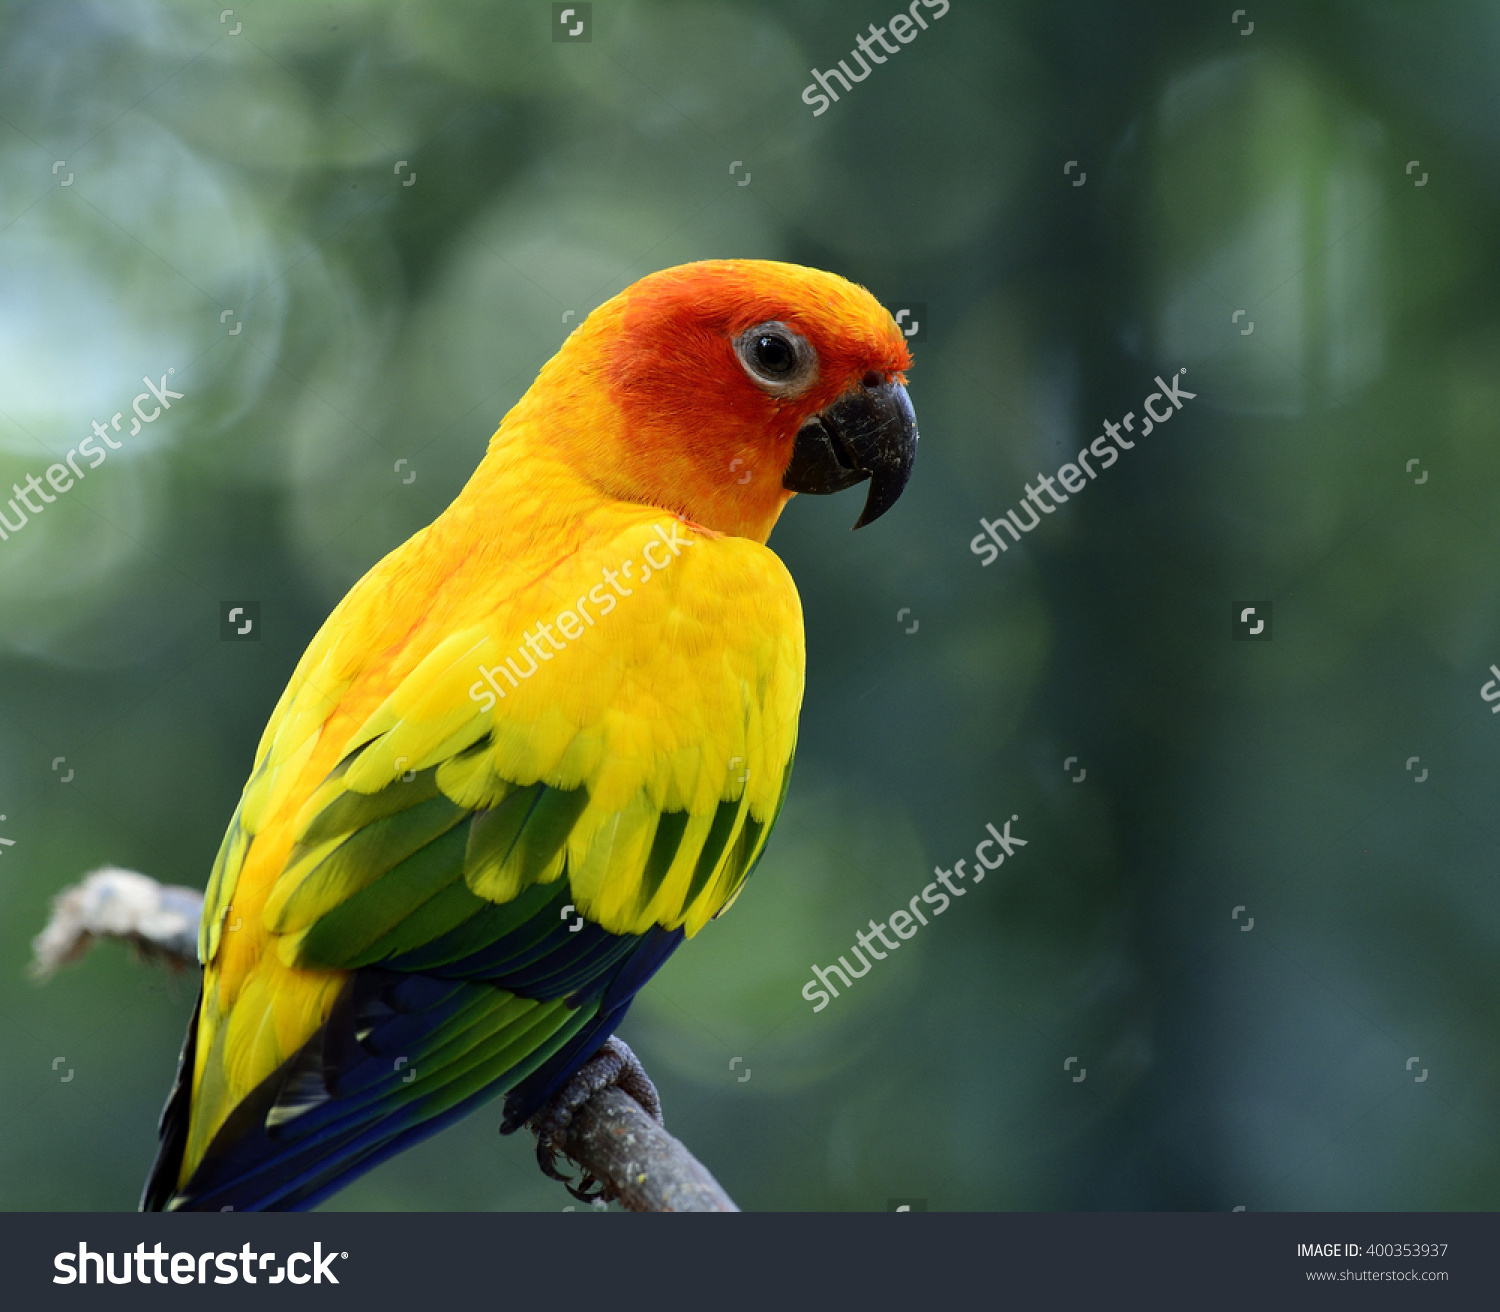 Sun Parakeet clipart #2, Download drawings